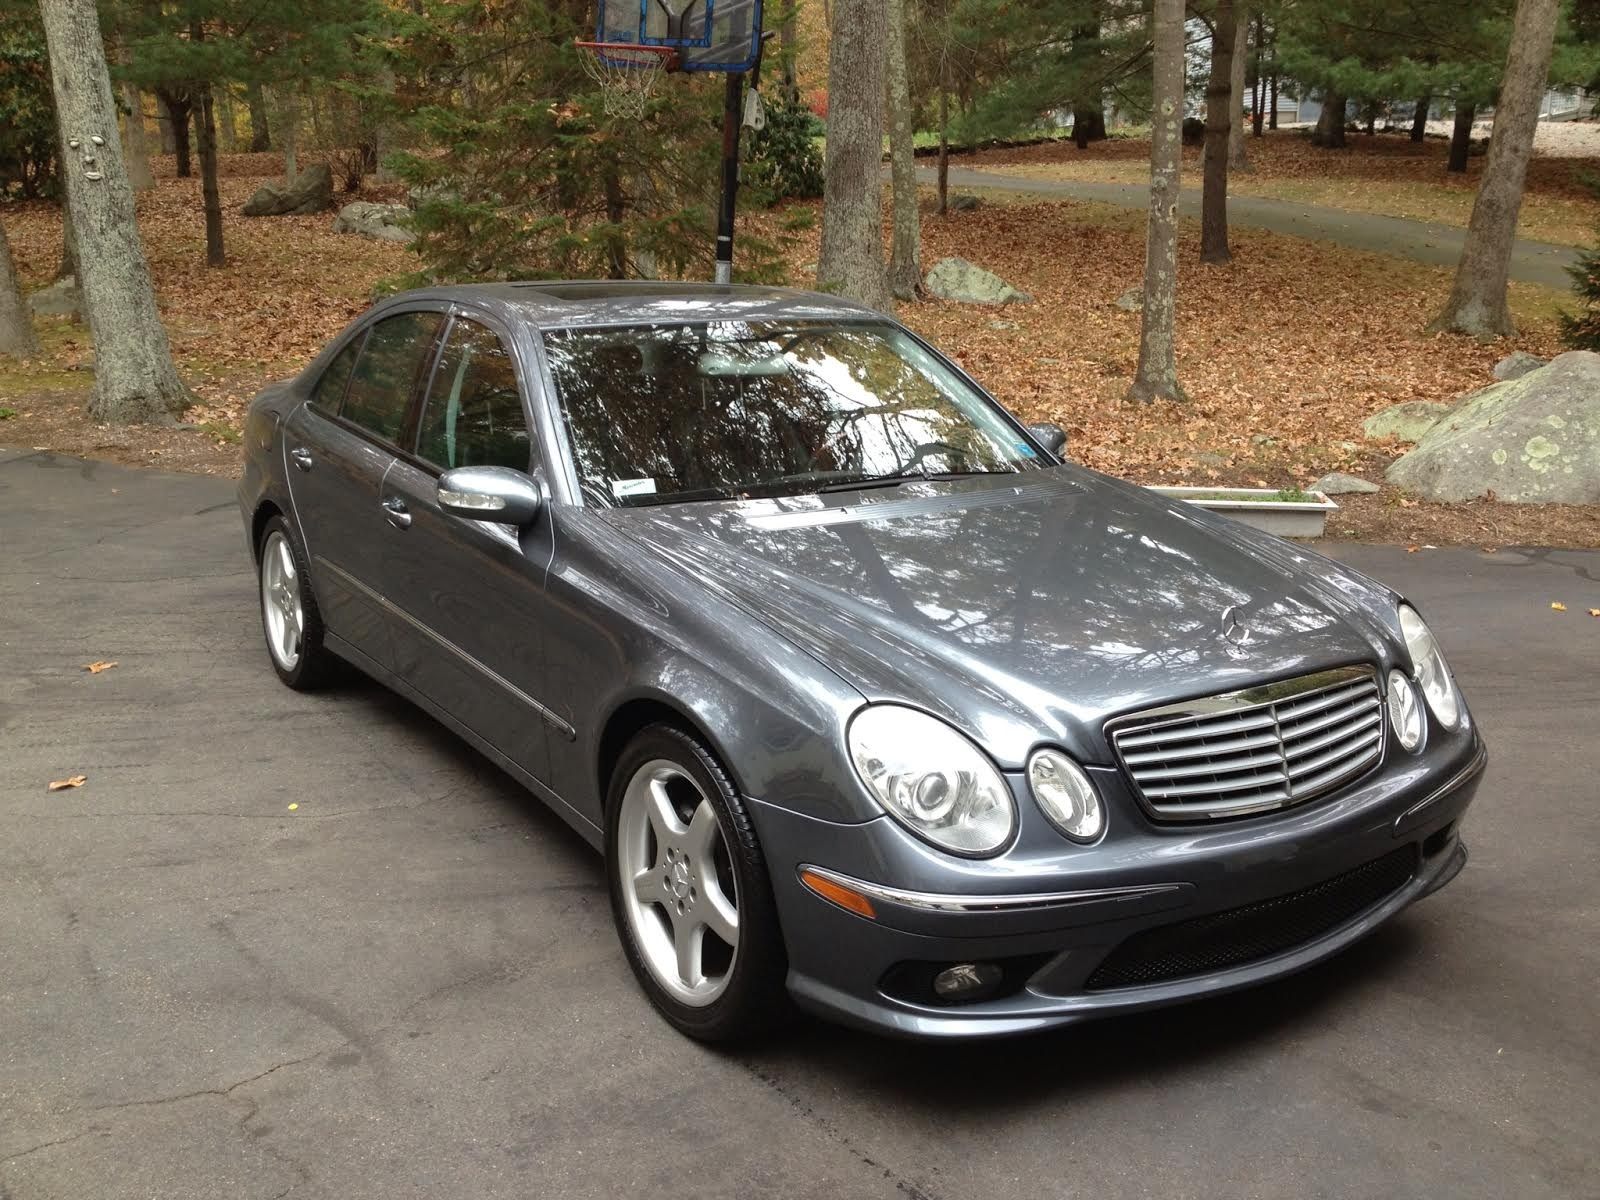 2005 mercedes benz e class pictures cargurus for 2005 s500 mercedes benz